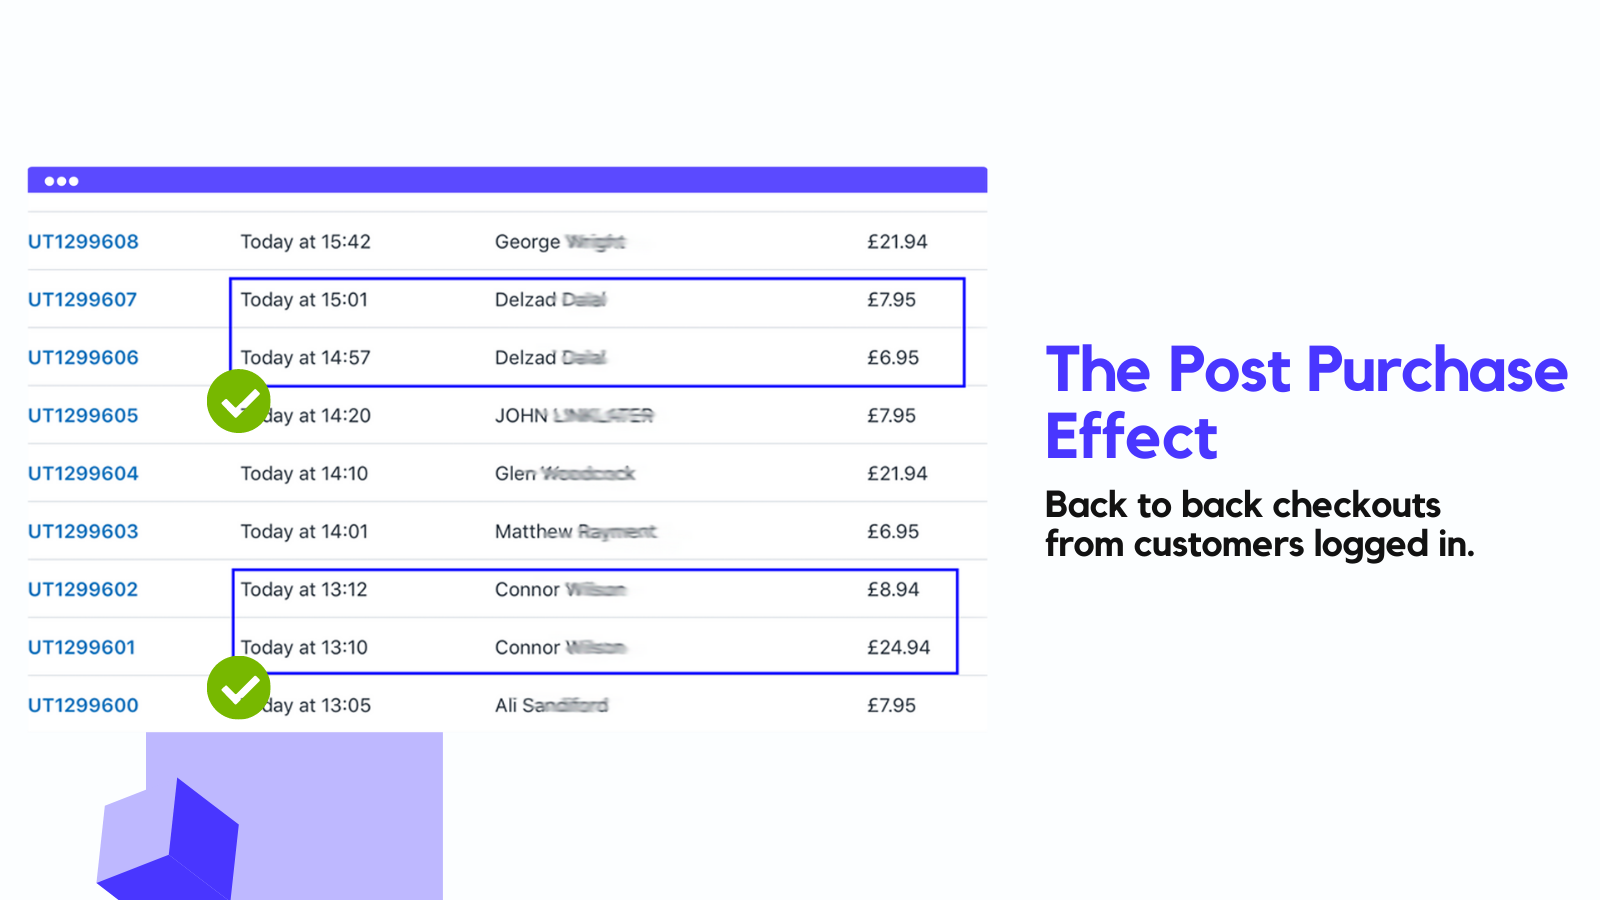 The Post Purchase Upsell Effect